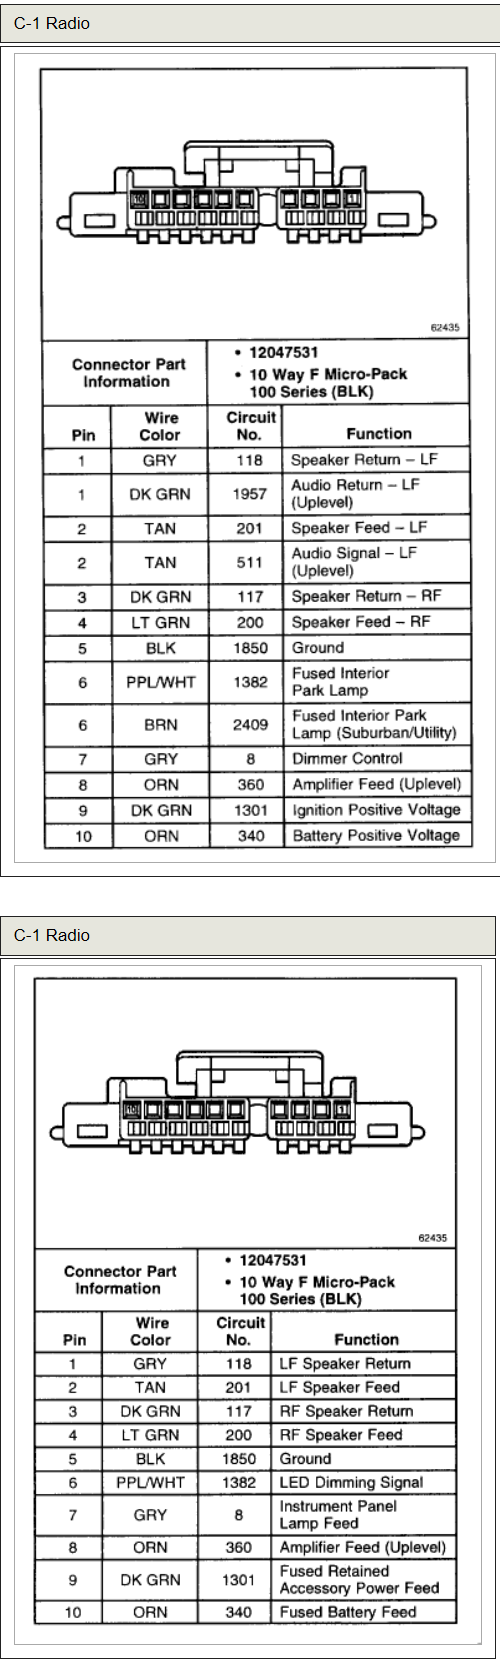 Chevrolet Car Radio Stereo Audio Wiring Diagram Autoradio Connector 2000 Chevy S10 Wire Installation Schematic Schema Esquema De Conexiones Anschlusskammern Konektor